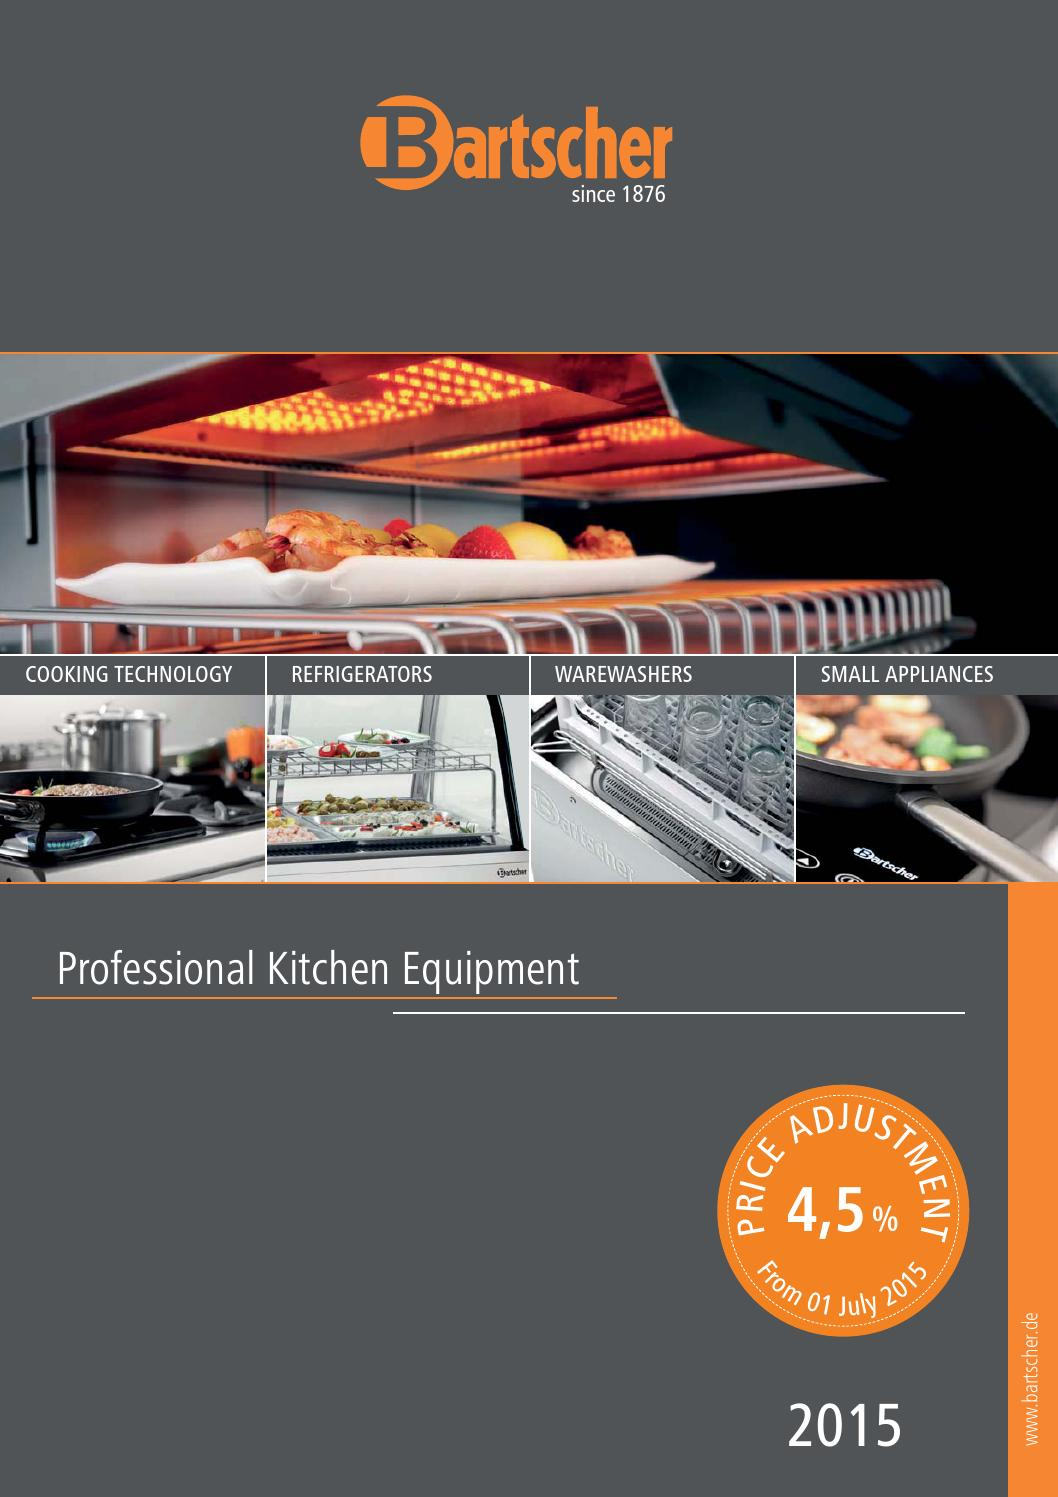 Bartscher Katalog 2015 Gb By Gmbh Issuu Electric 6 24kw Open Radiant Elements 2 1 Gn Oven With 4 Rack